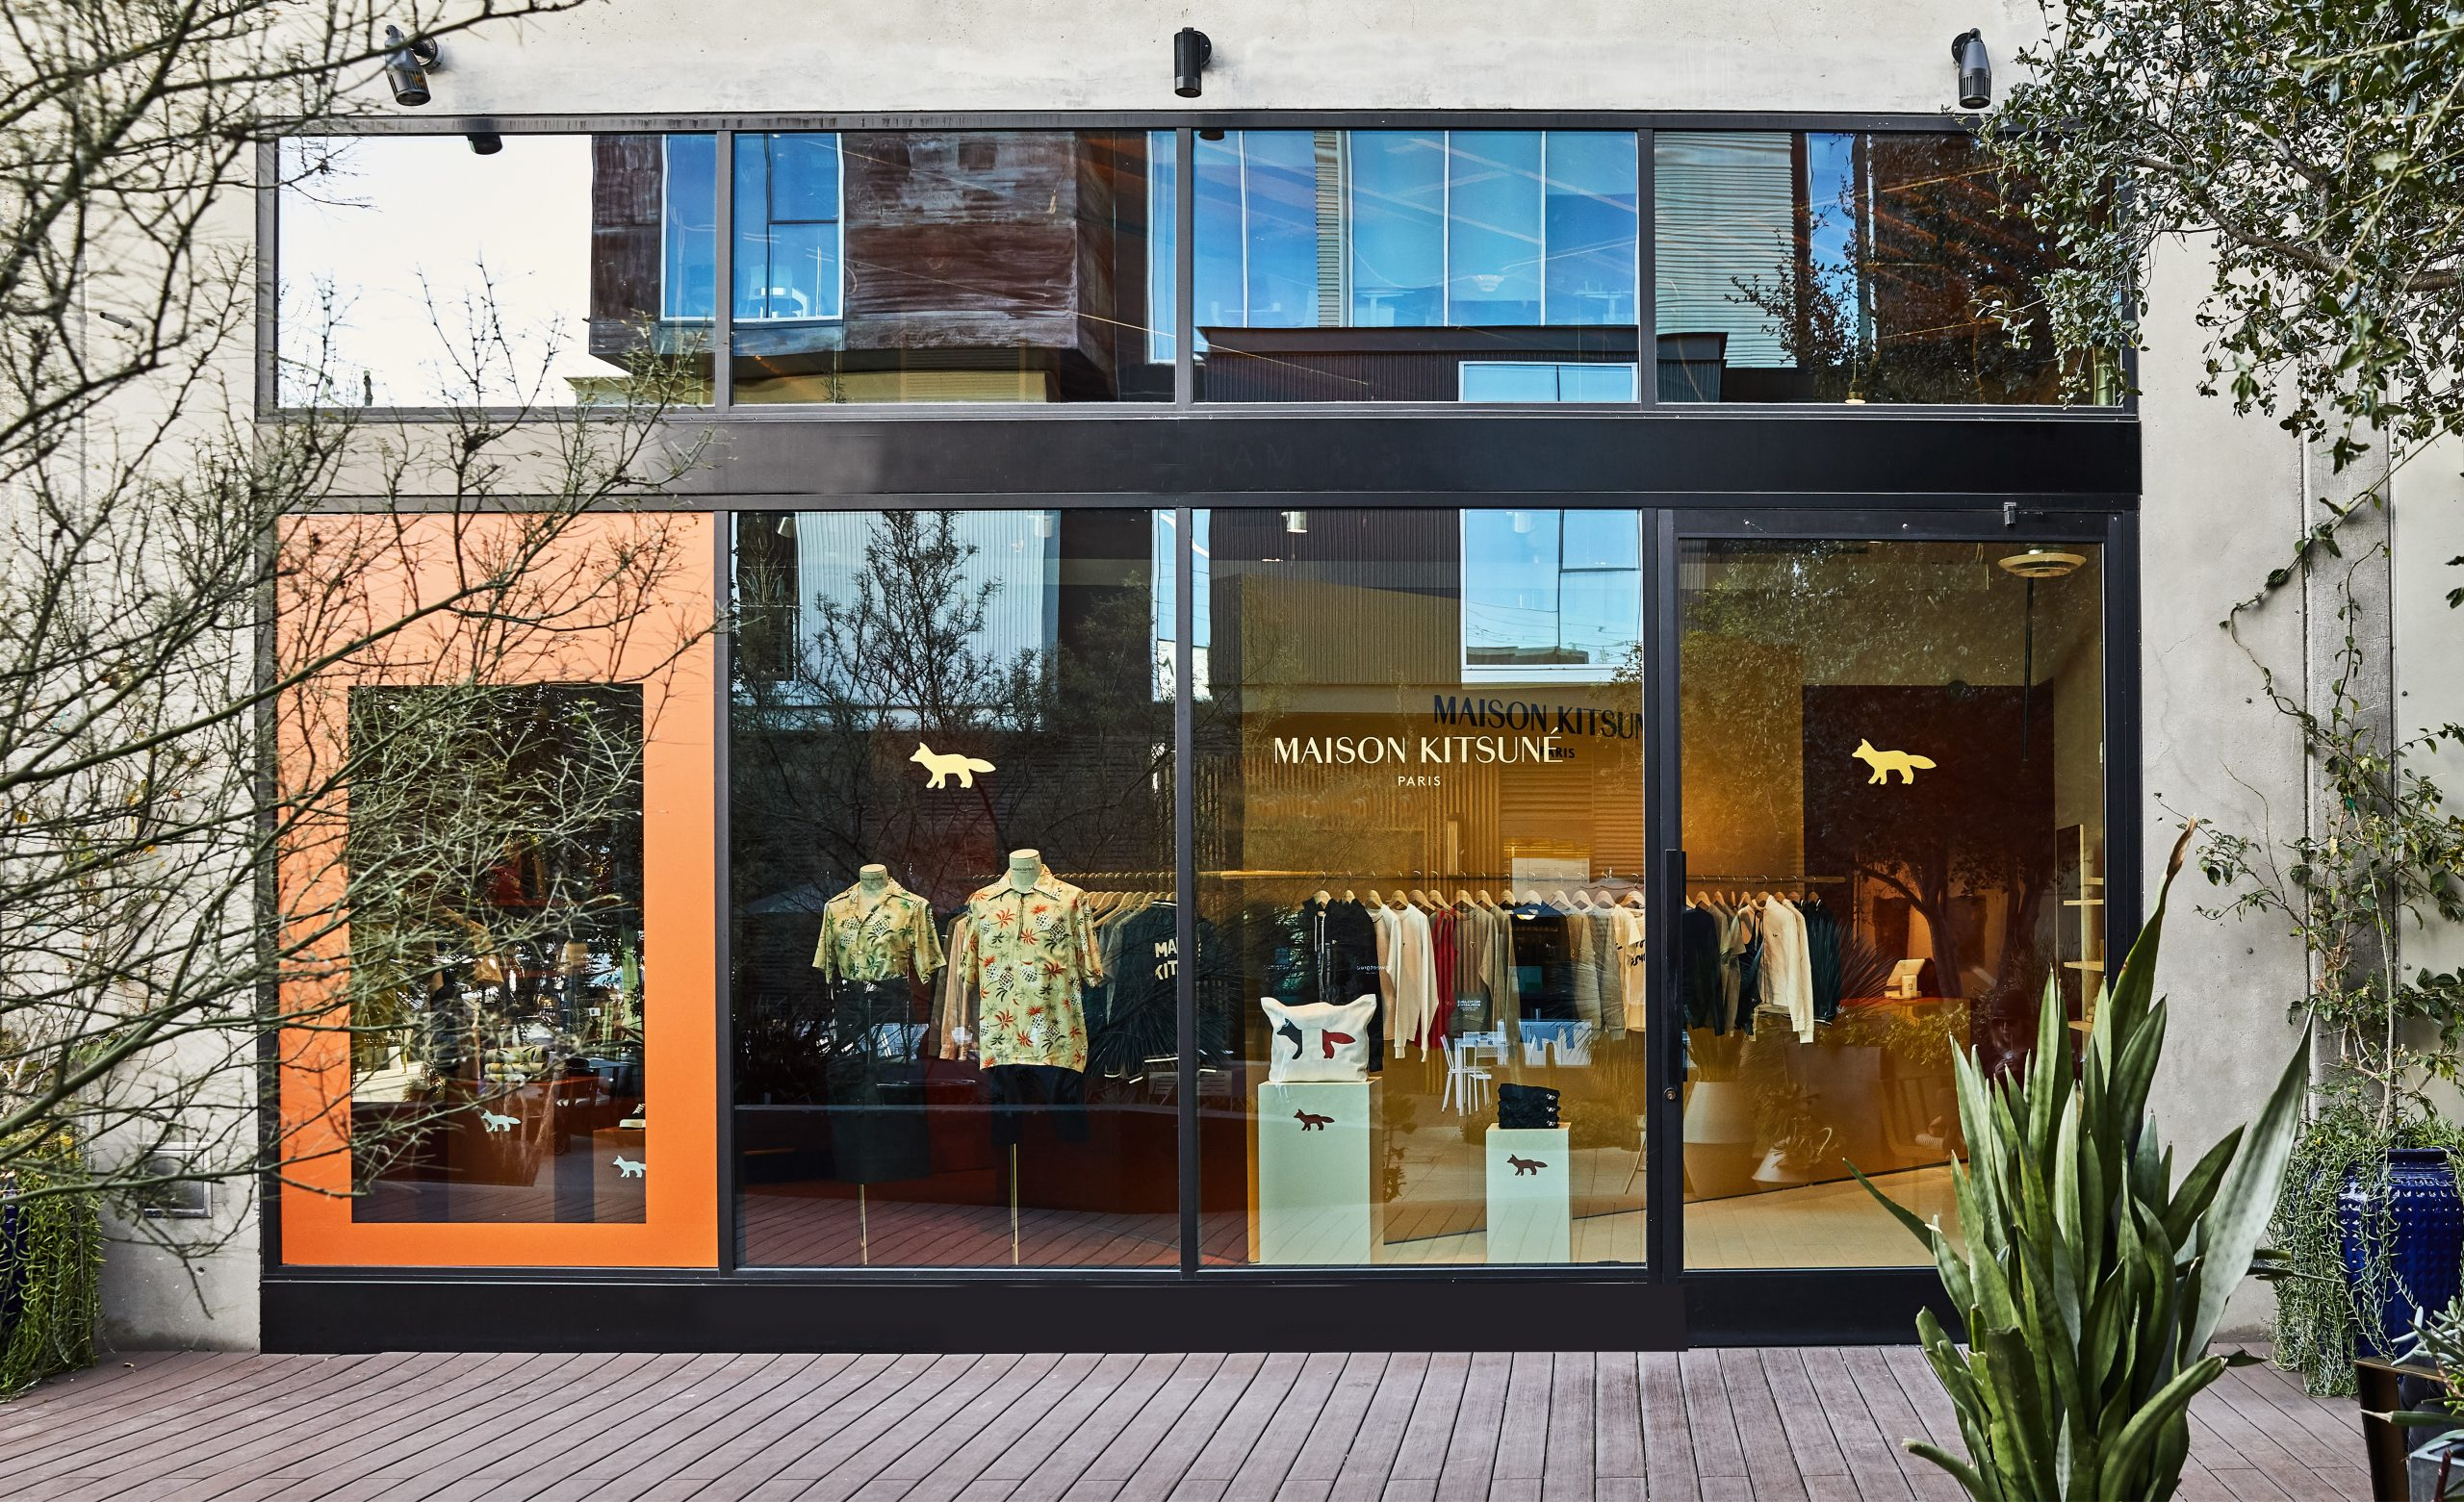 Maison Kitsuné first pop-up in Los Angeles